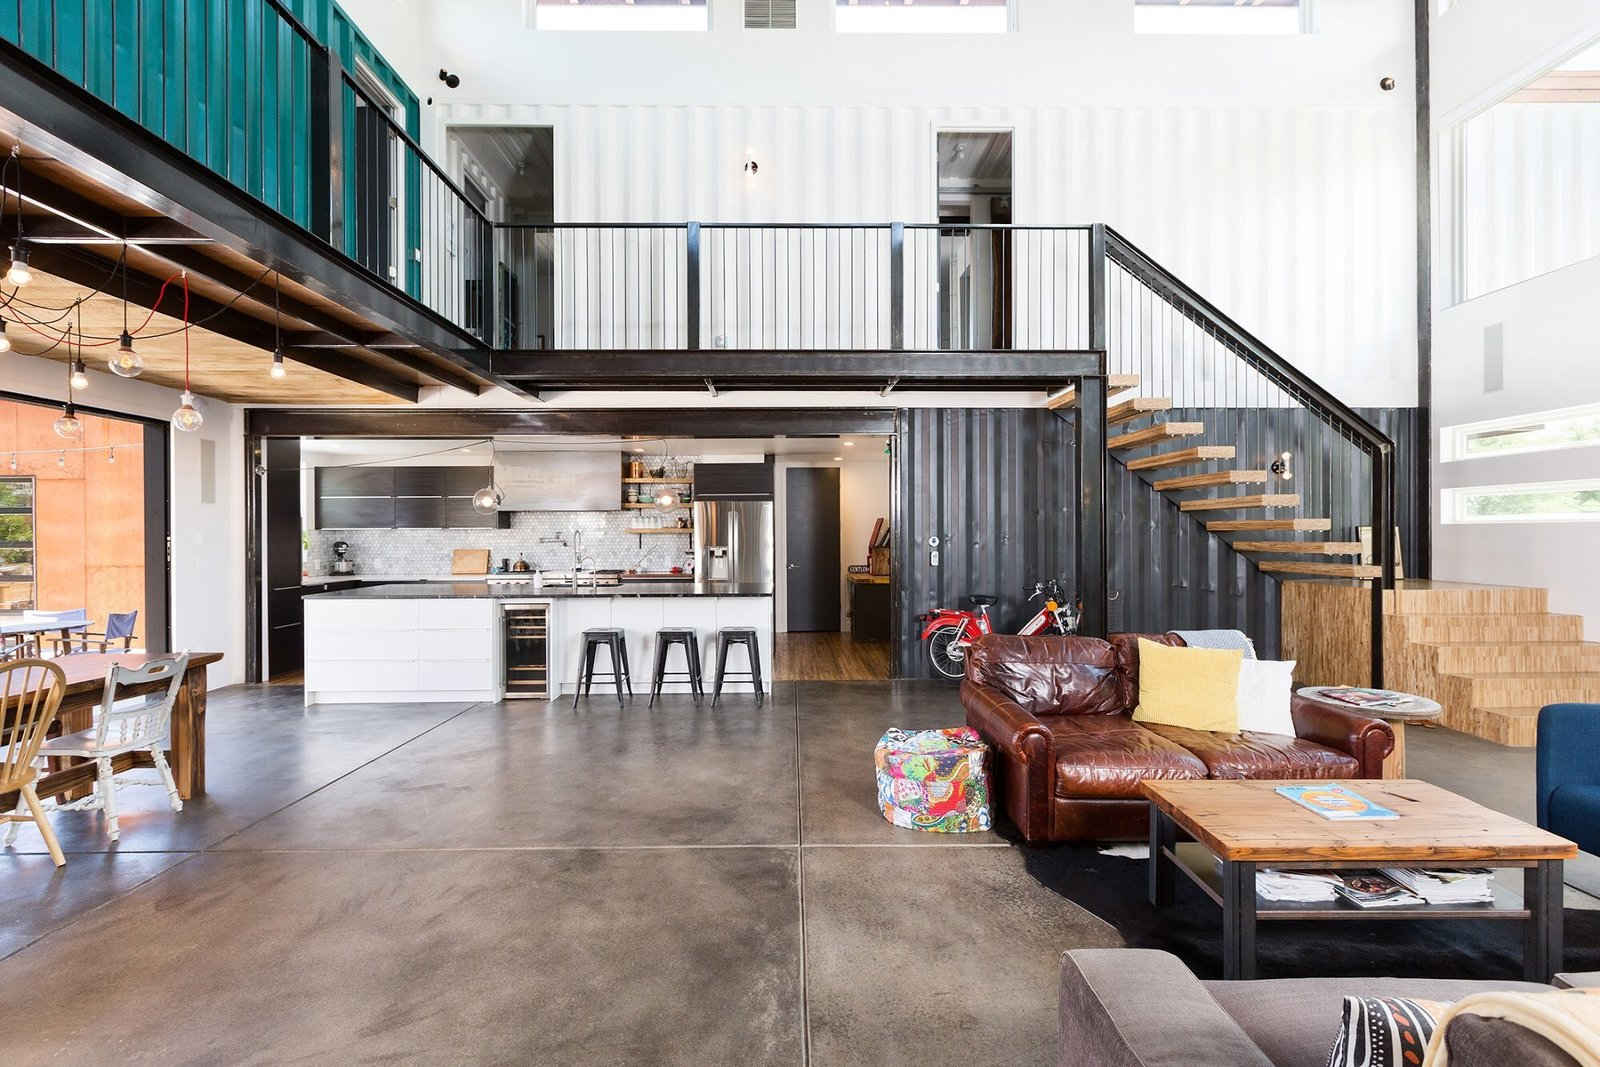 Chris Boylen Photography Tagged: Living Room, Chair, Bench, Ceiling Lighting, End Tables, and Sofa.  The Container house by regan foster